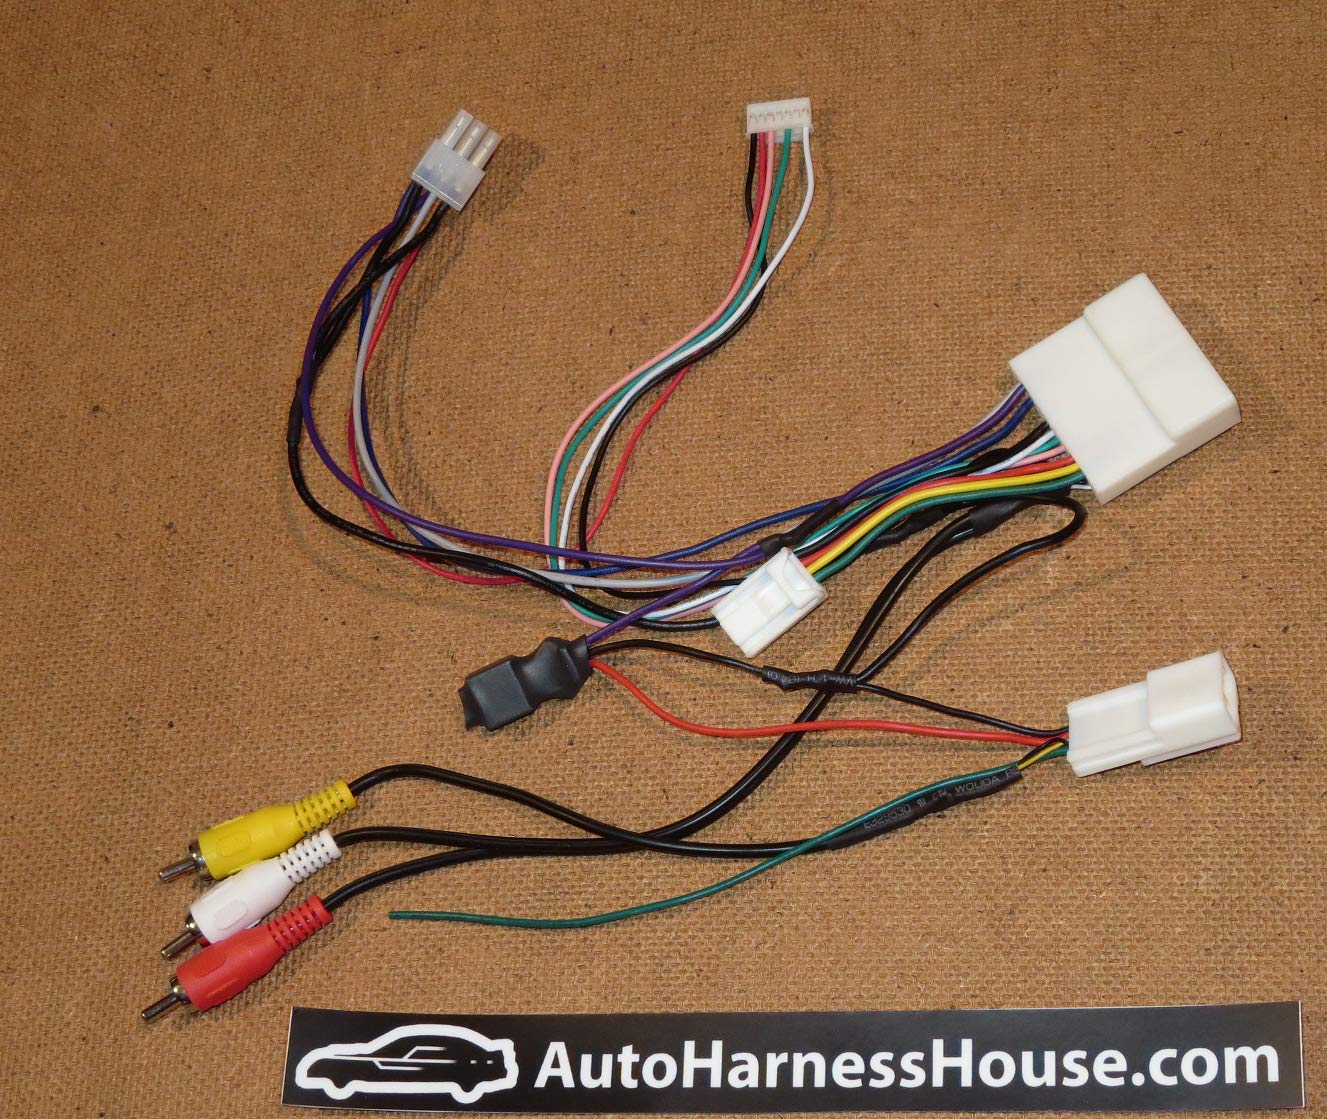 AutoHarnessHouse Aftermarket Headunit Installation Adapter compatible with Subaru 2016-2019 by AutoHarnessHouse.com